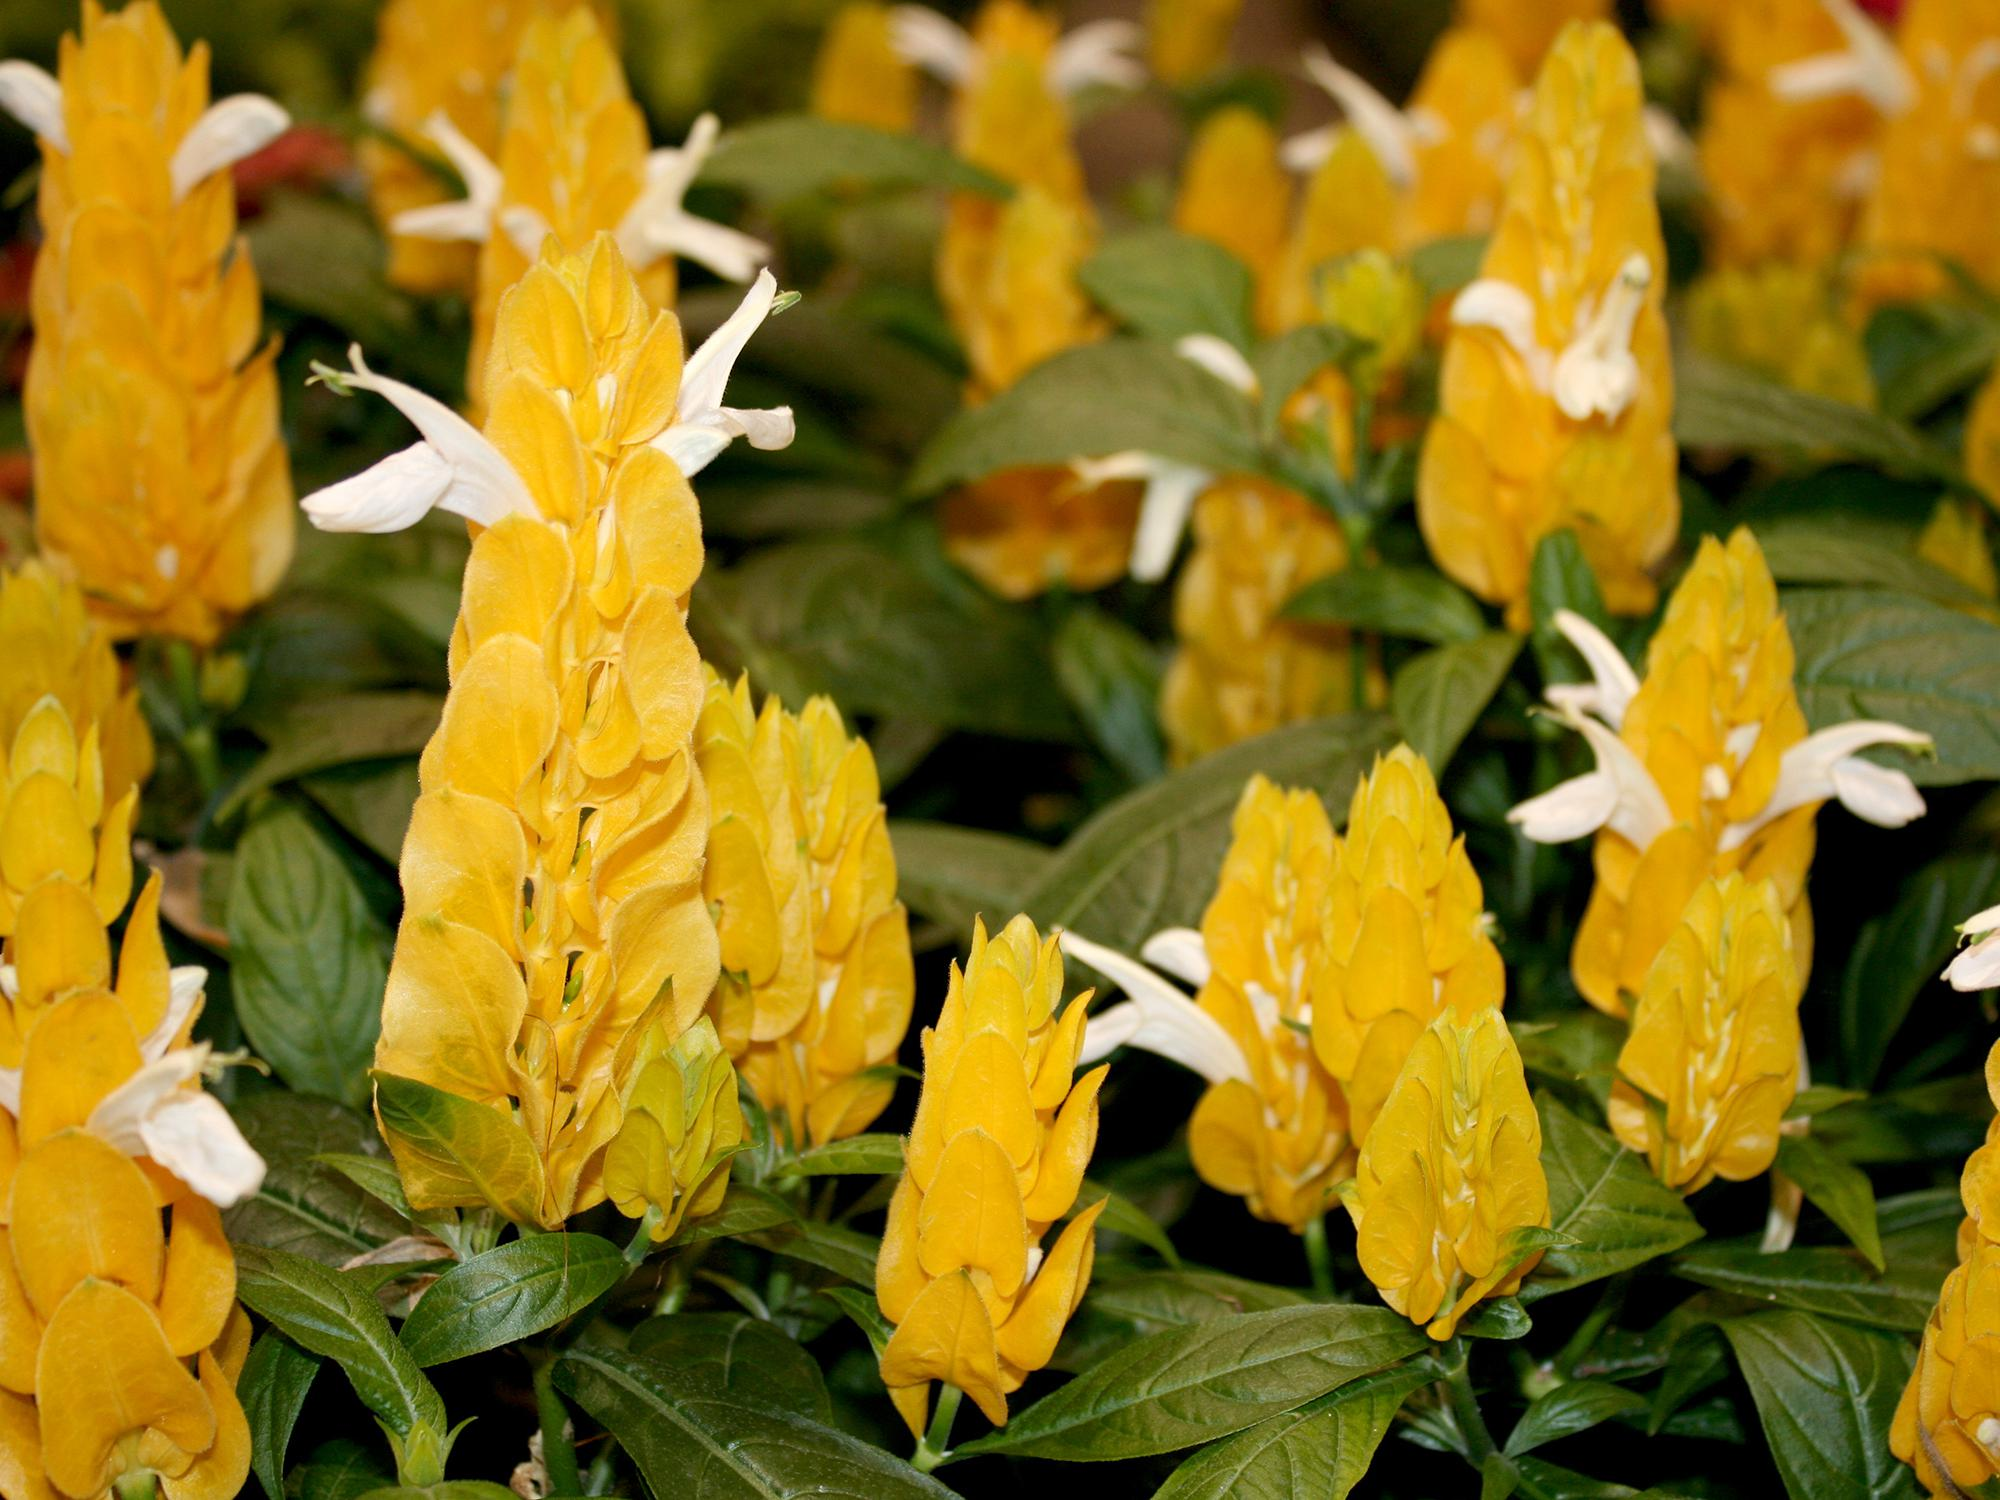 The yellow shrimp plant is easy to grow and will bloom all summer long. Plant and grow the plants where they can receive full morning sun but get some shade for protection from afternoon sunlight. (Photo by MSU Extension/Gary Bachman)